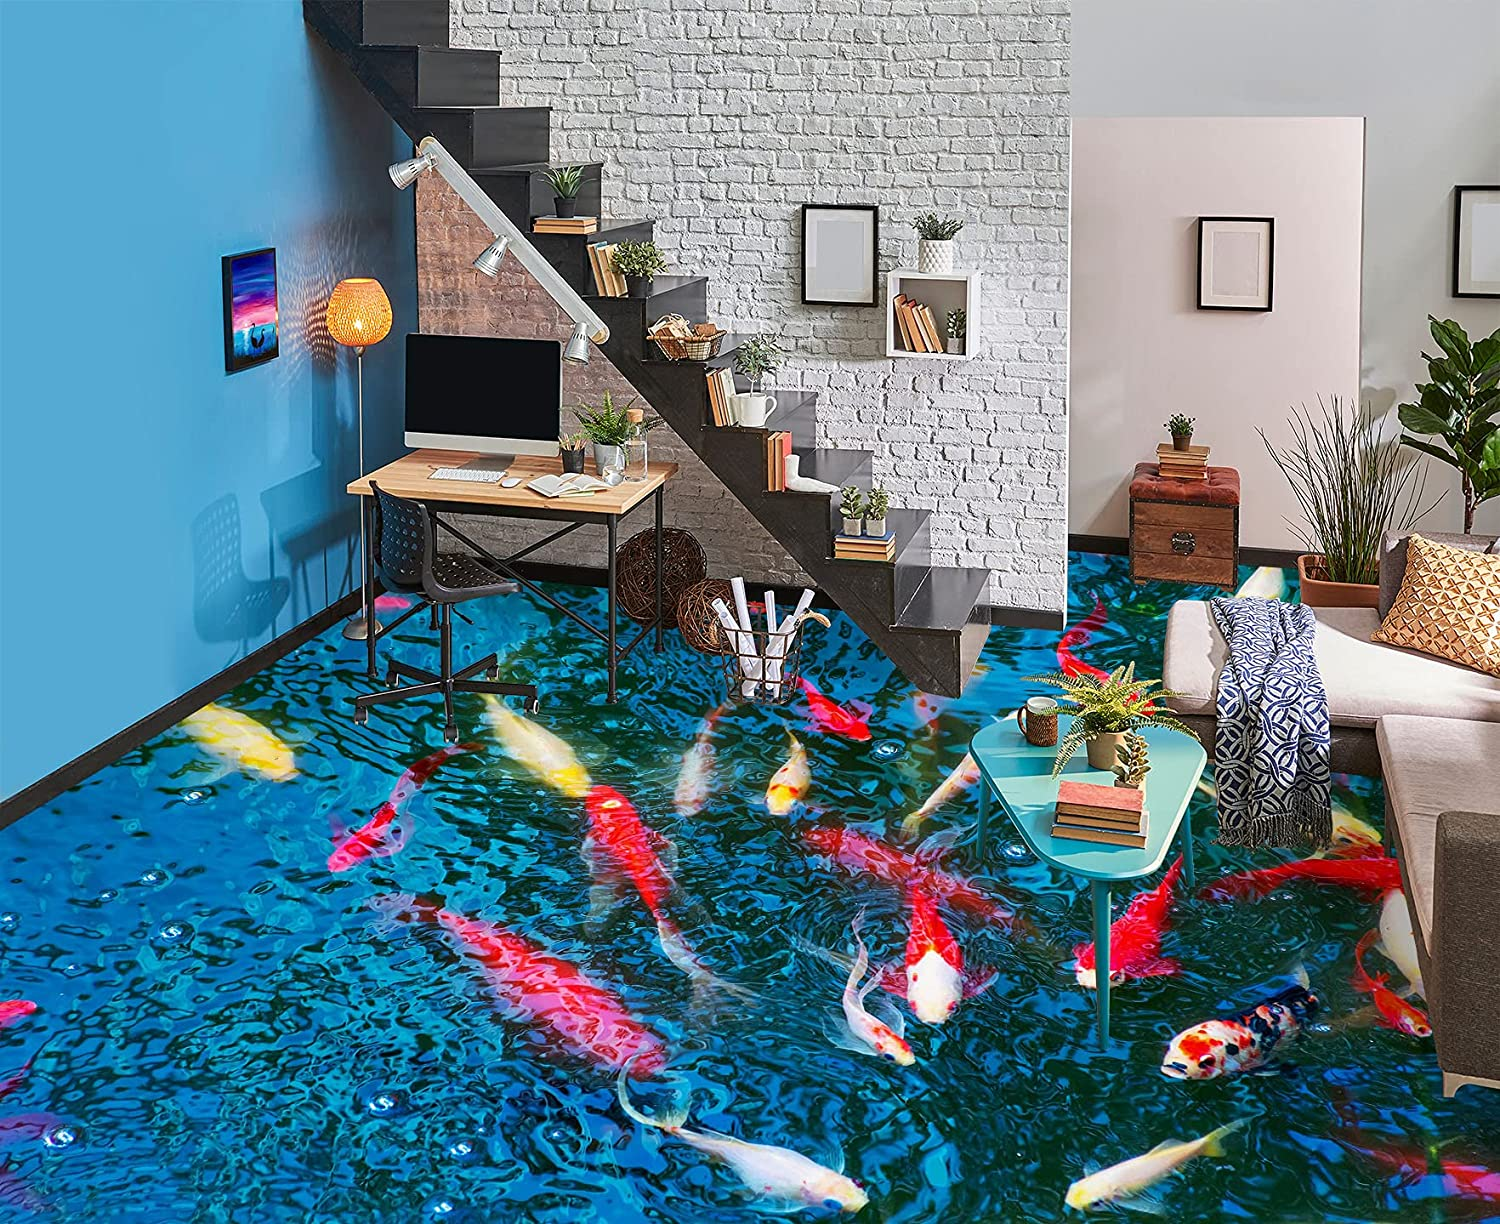 3D Goldfish Pond 8532 Floor Wallpaper Ranking TOP20 Wall Decal Easy-to-use AJ Murals Print